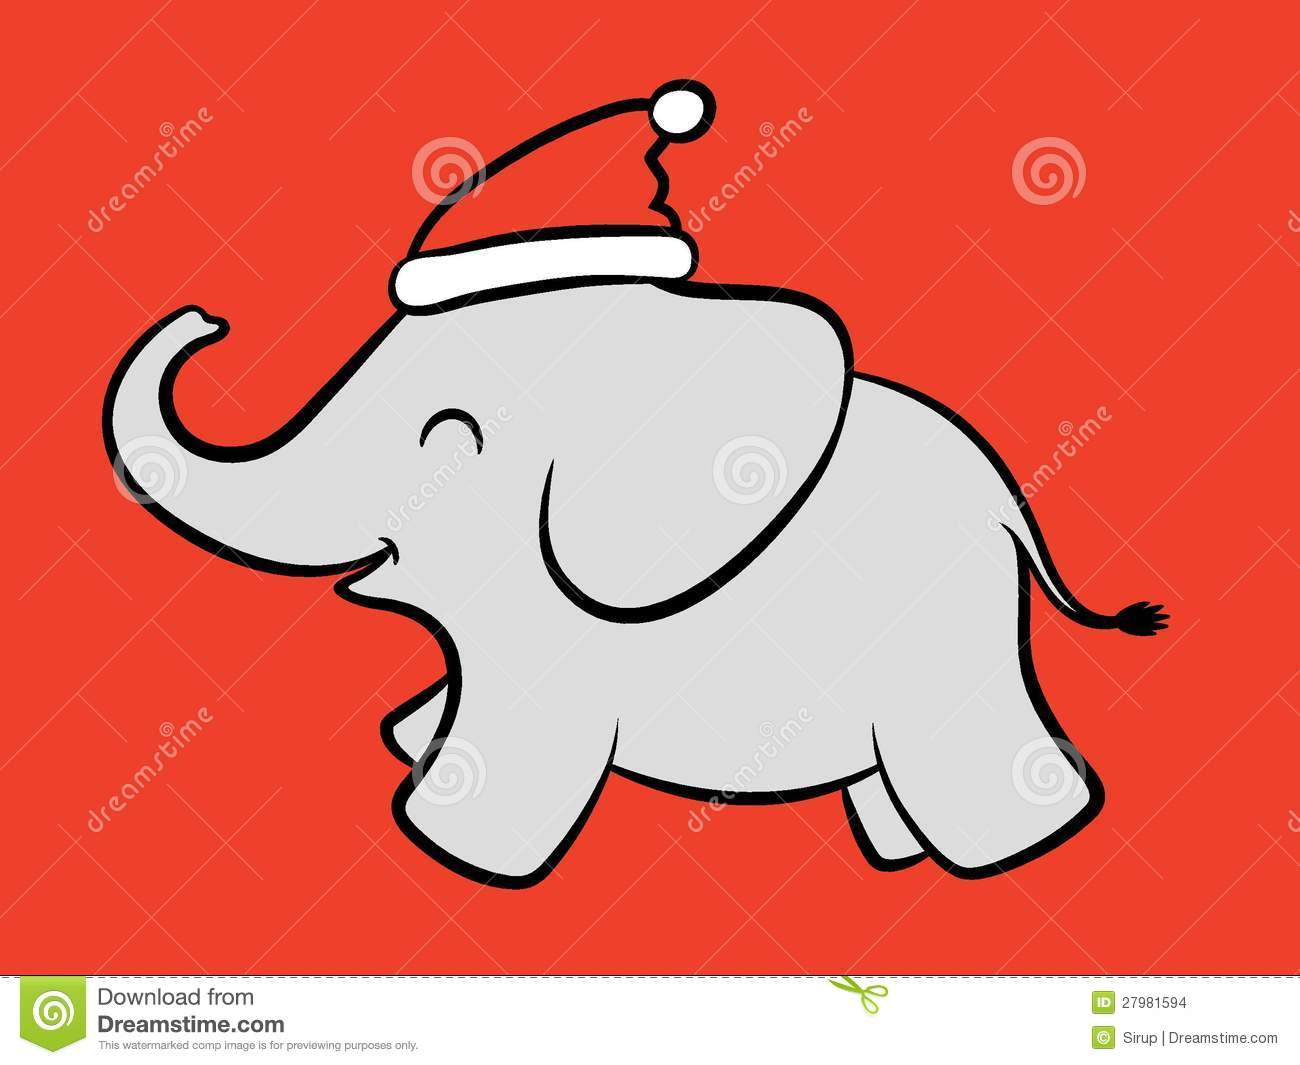 Baby christmas elephant clipart graphic library Collection of 14 free Elephants clipart christmas crabs clipart ... graphic library